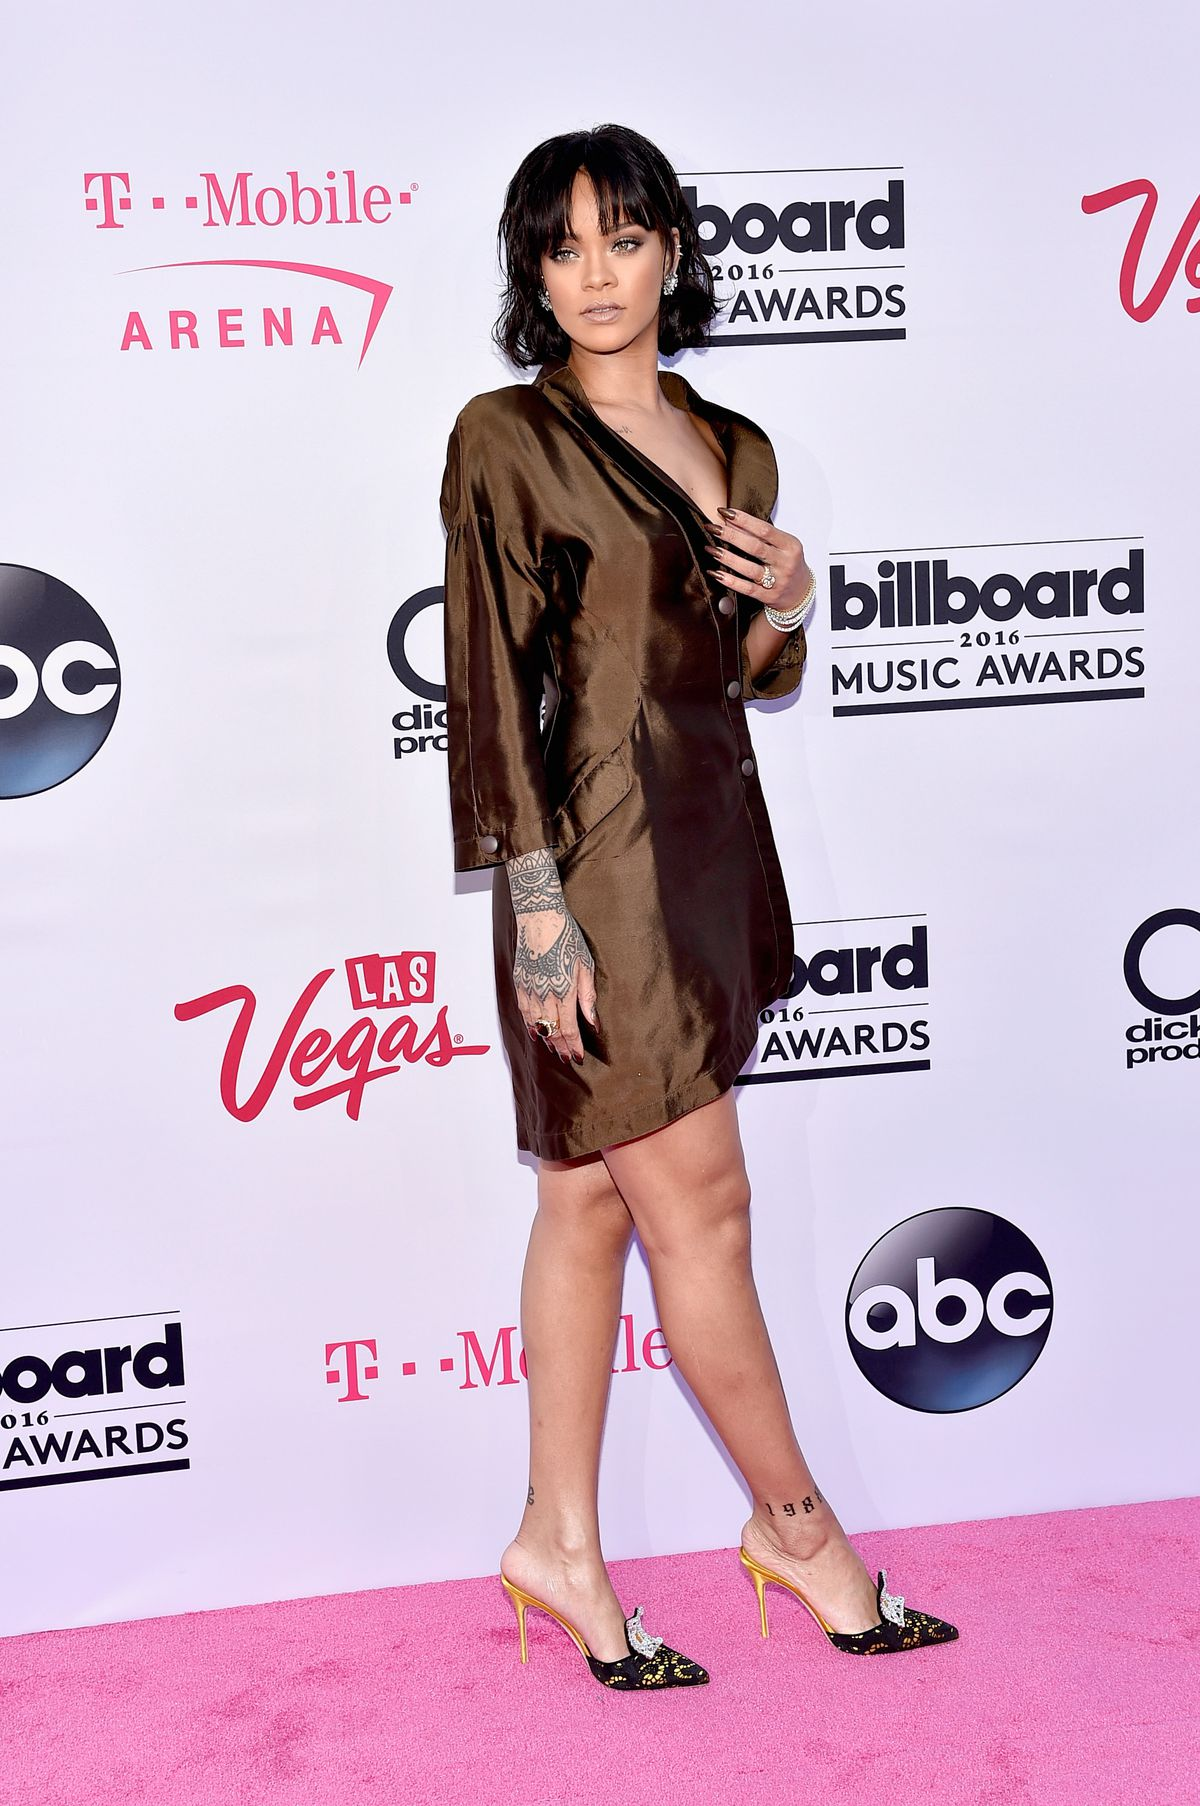 Rihanna Is Channeling Your Mom in the 80s at the Billboard Music Awards